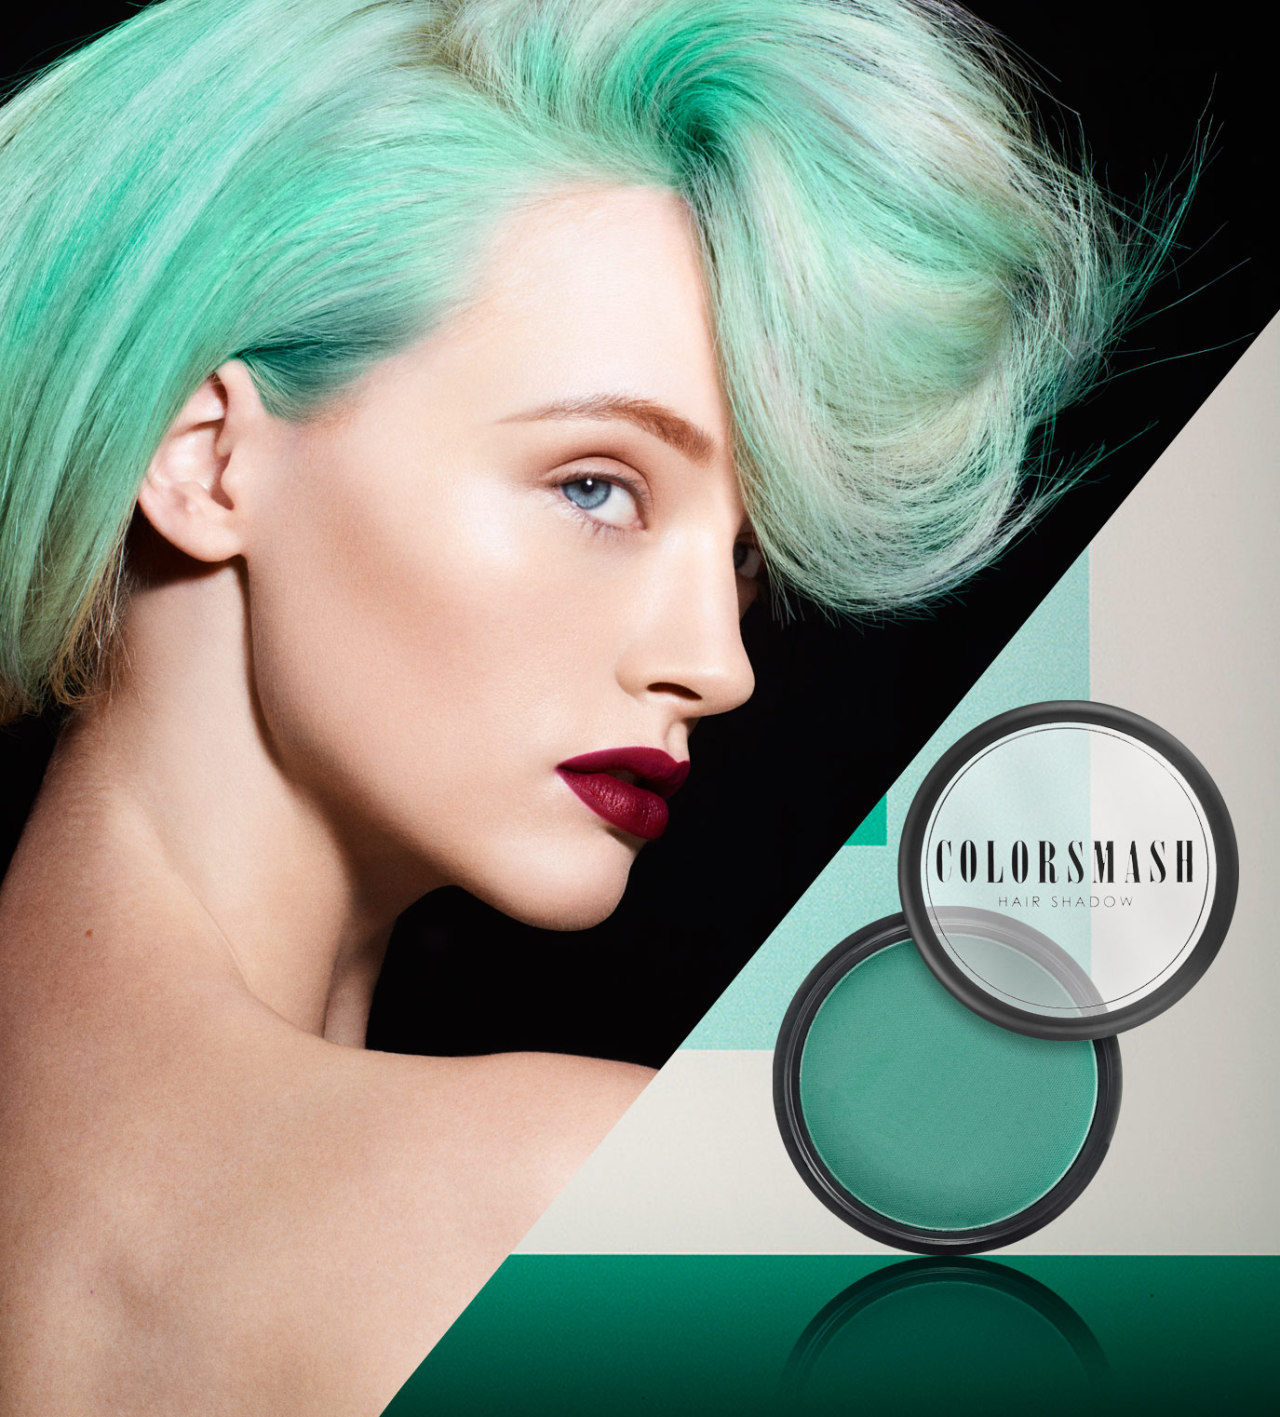 "SEPHORA HOT NOW: VOLUME 3 COLORSMASH HAIR SHADOW Sephora Head Merchant Margarita Arriagada on the power of potent hair shadow. COLORSMASH HAIR SHADOW: ""We've seen a lot of hair chalk out there, and found that this formula was really blendable. Some have too much payoff, some transfer. This is really an eye shadow formulated for your hair. I love the fact that it looks great on blondes and dark hair equally. For me, [the bold hair color explosion is] a little like what we saw happening with nail—it's just getting bigger and bigger. Now when you think about what you wear, you think, how am I going to complete this with a nail?"" SHOP COLORSMASH AT SEPHORA ▸ MORE ON MARGARITA AND THE PANTONE COLOR OF THE YEAR ▸ FIND OUT ABOUT THE OTHER PRODUCTS IN OUR EMERALD SEPHORA HOT NOW ▸"